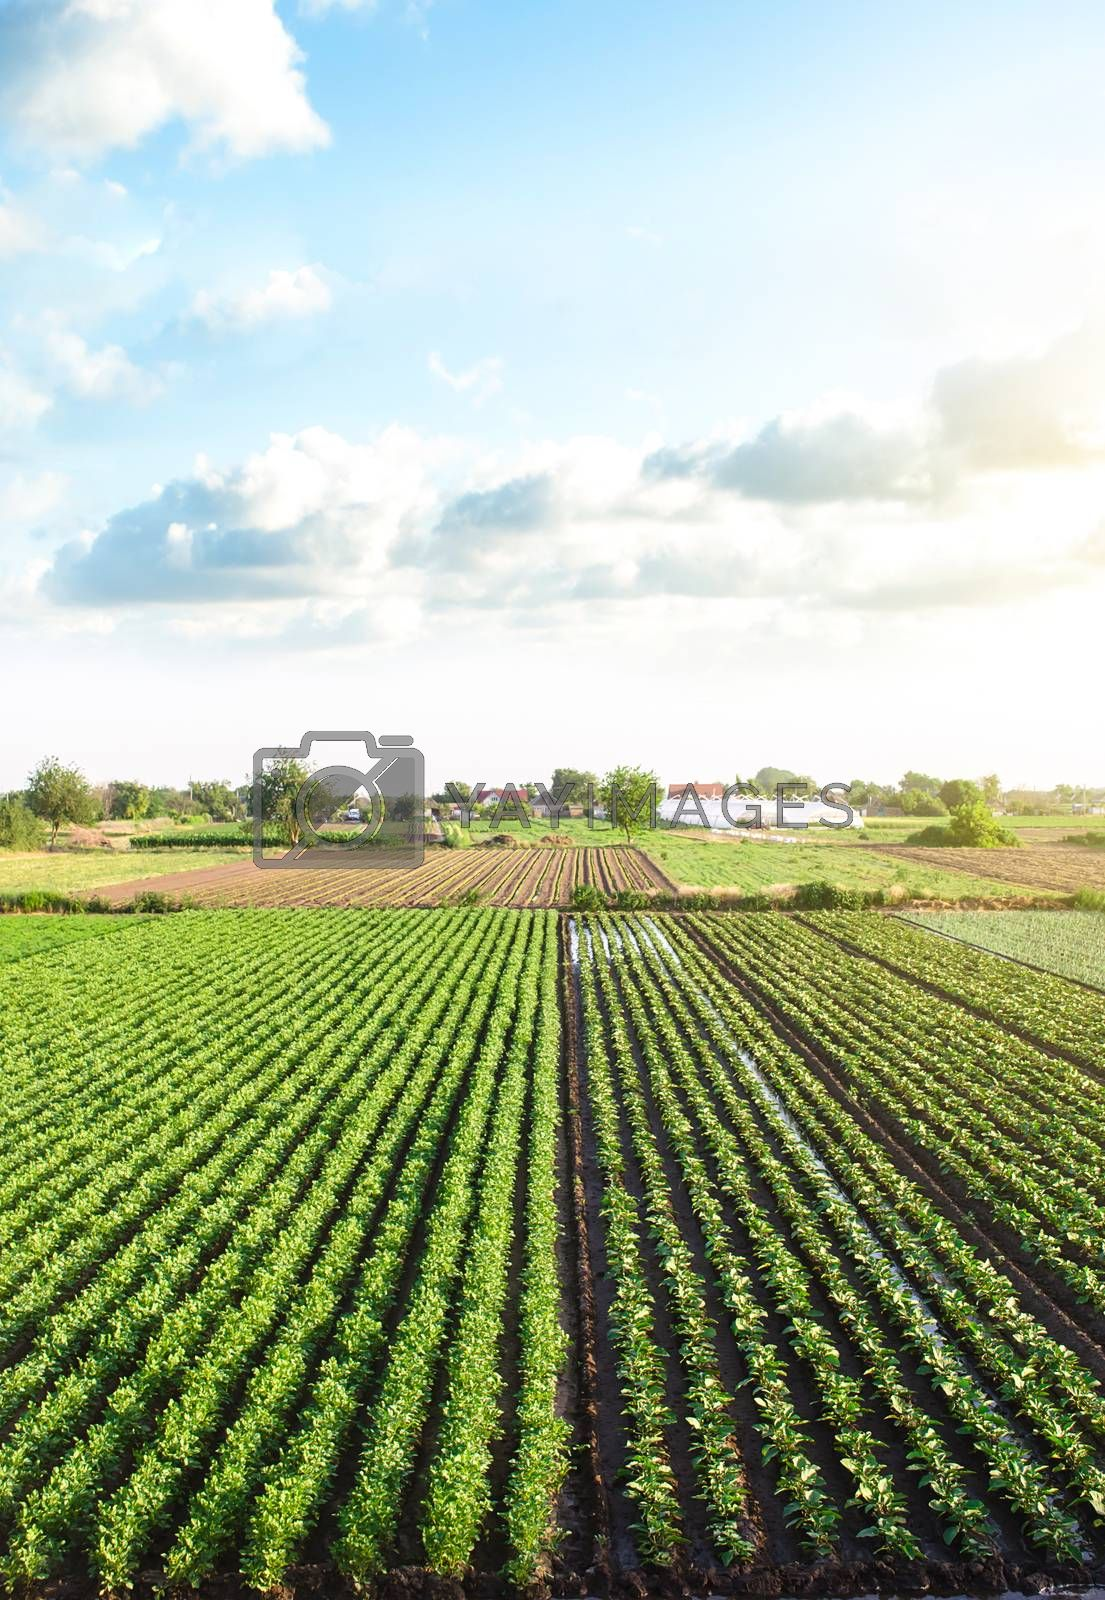 Plantation landscape of green potato bushes. Agroindustry and agribusiness. European organic farming. Growing food on the farm. Growing care and harvesting. Beautiful countryside farmland. Aerial view